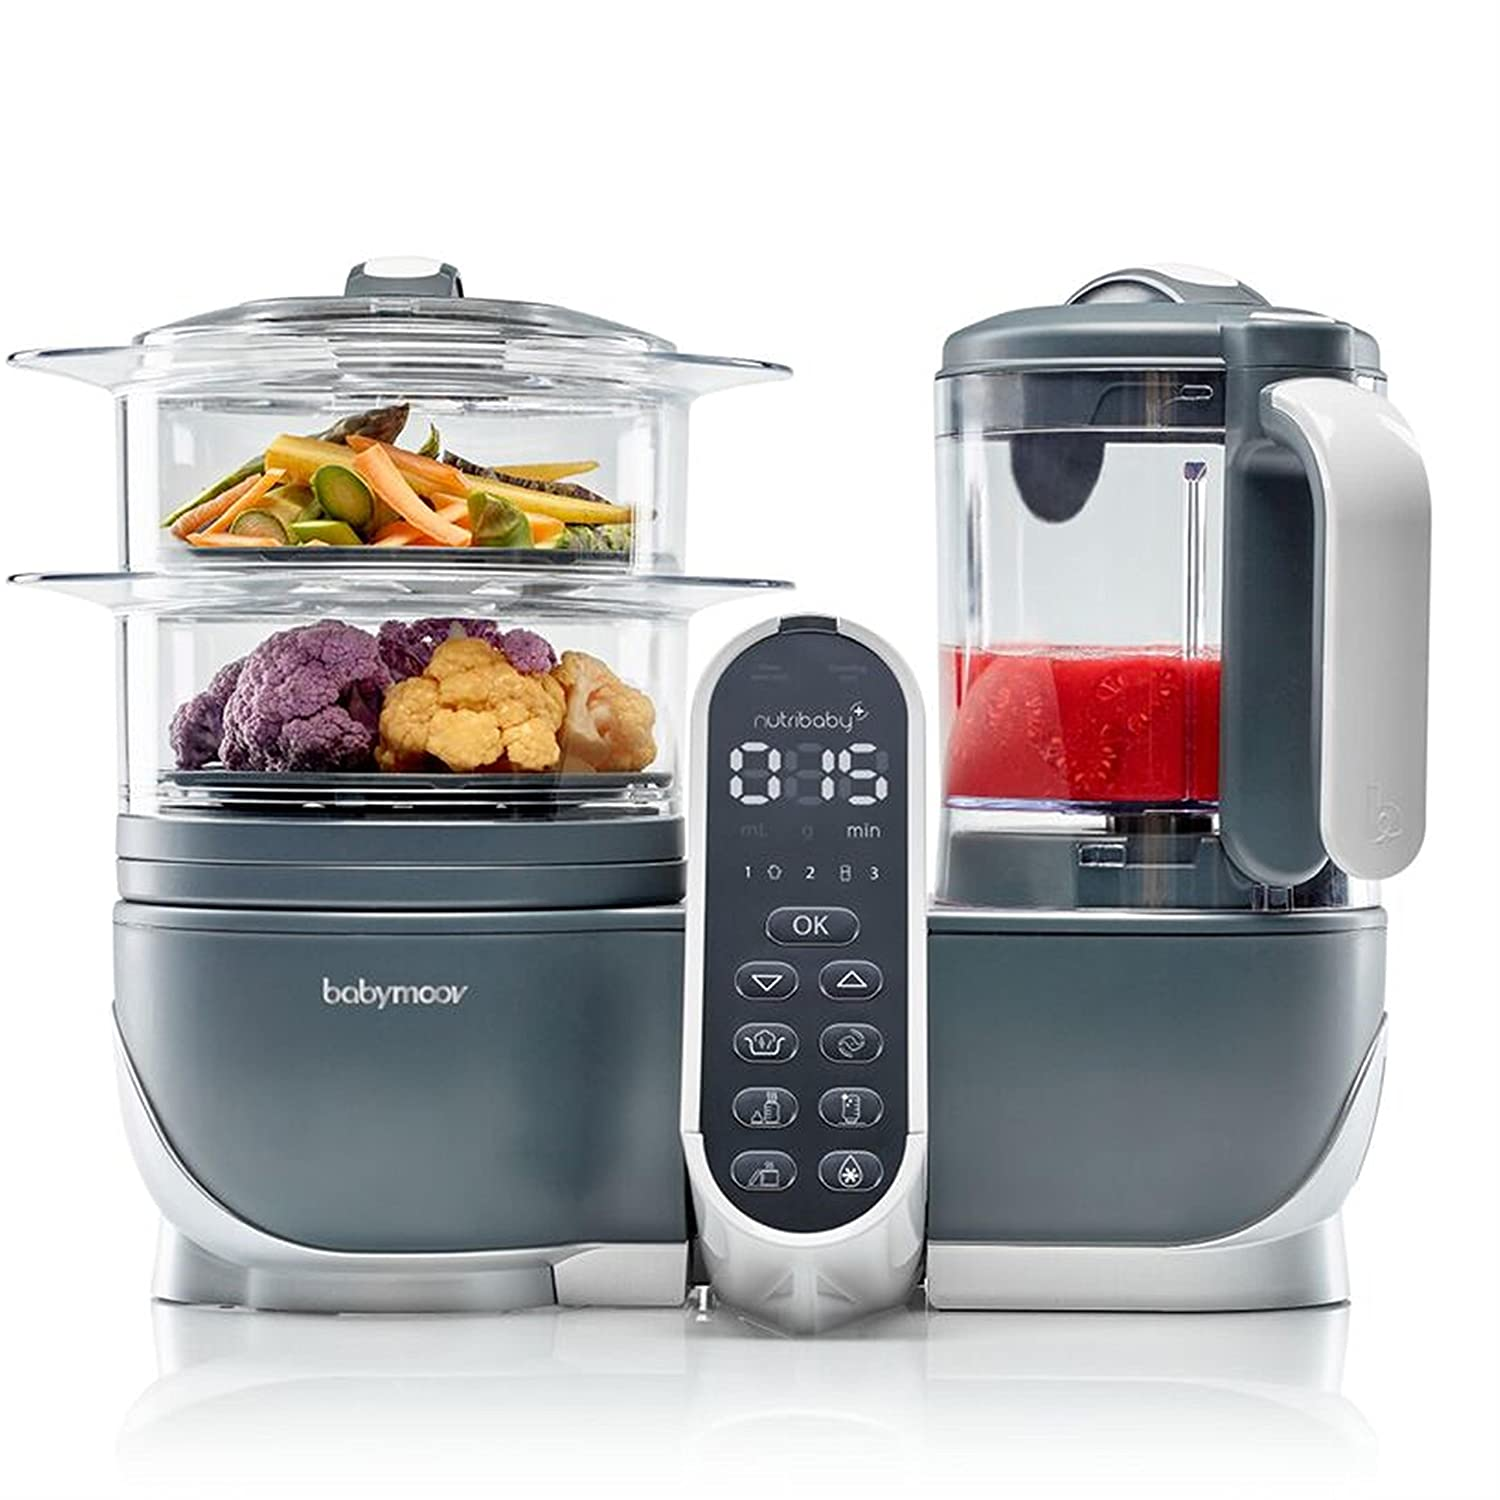 Top 6 Best Food Processors for Baby Food Reviews in 2020 4